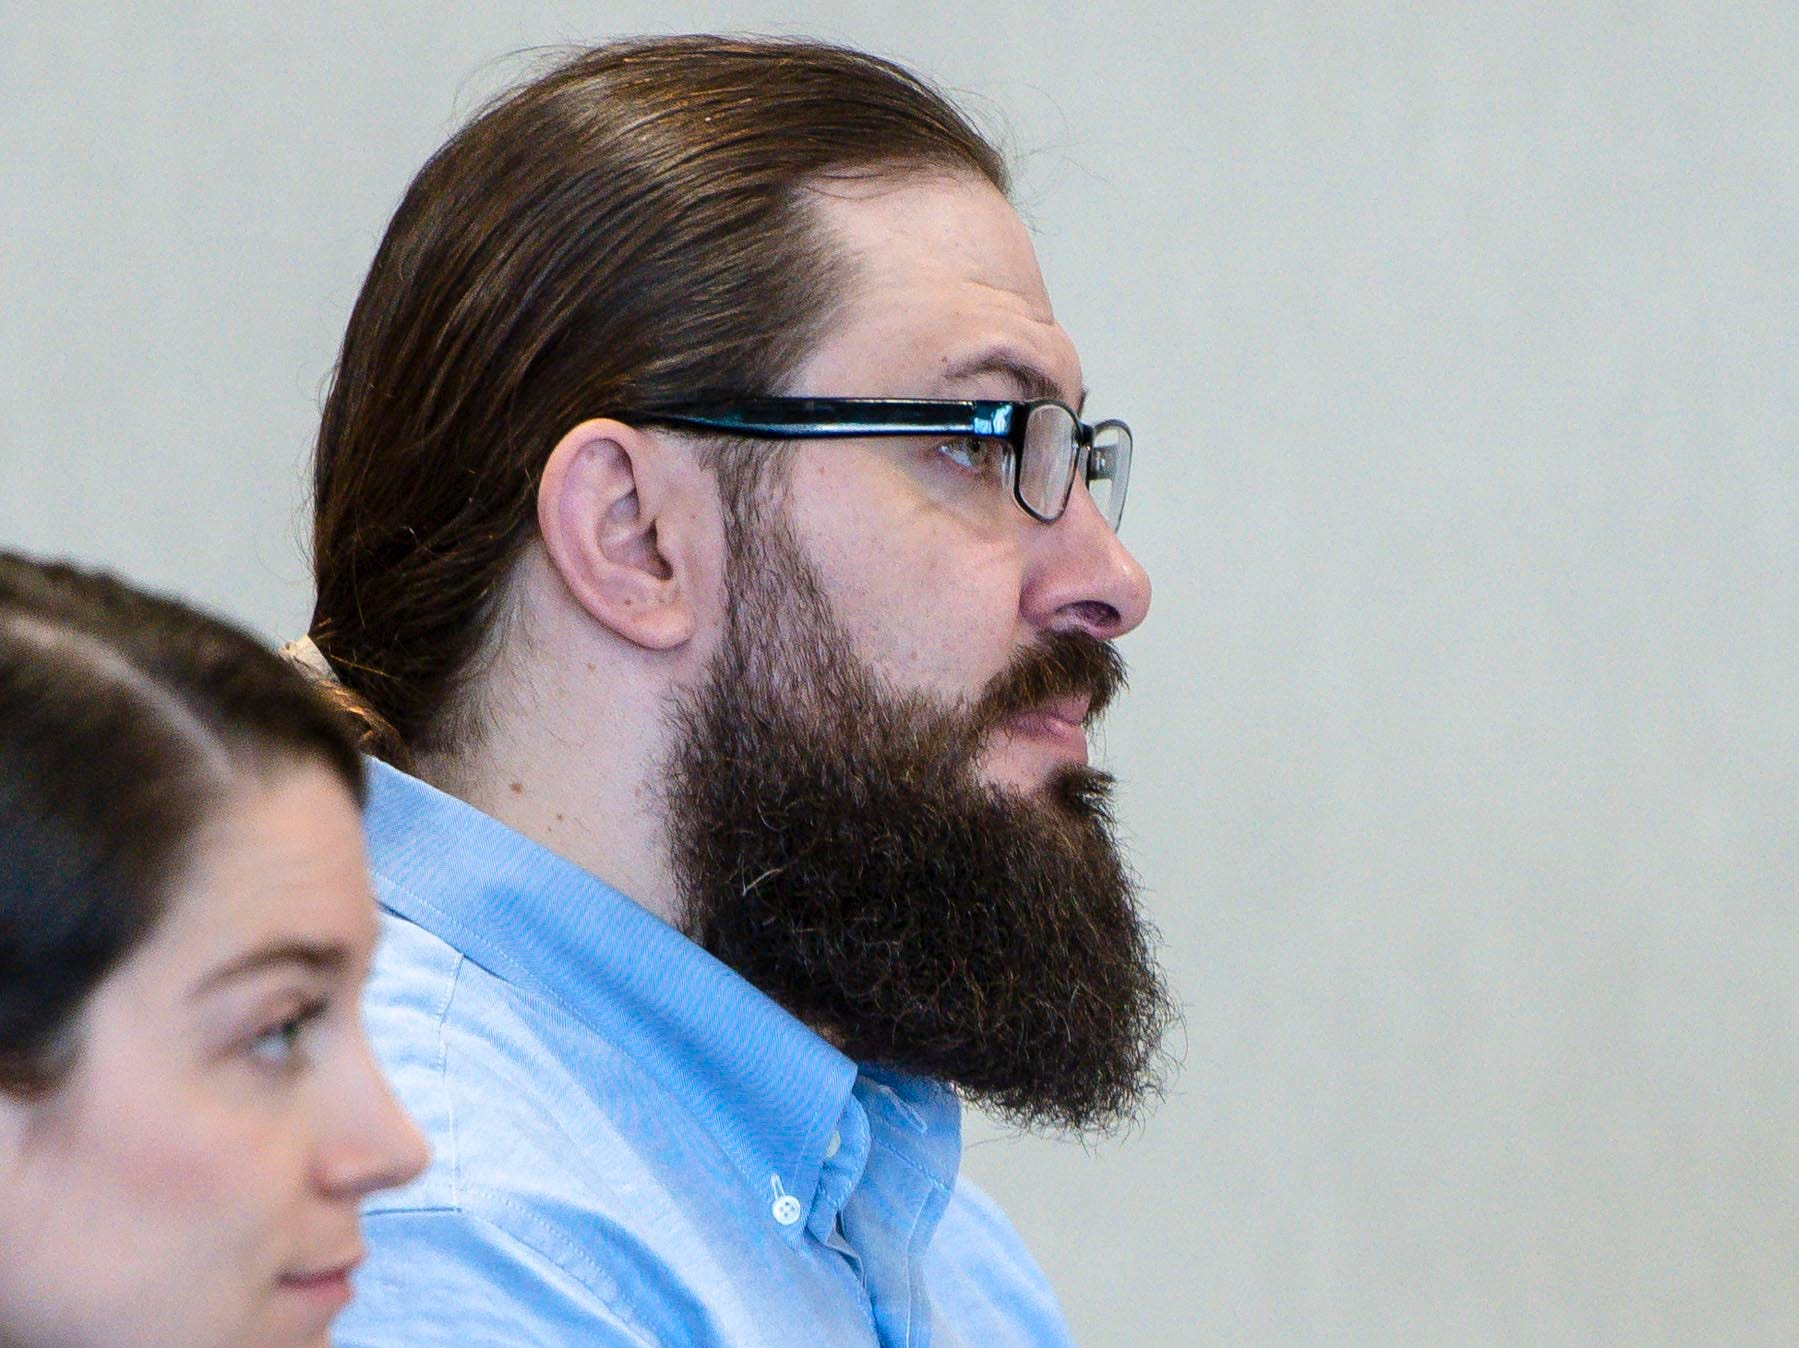 Steven Bourgoin appears for the first day of his trial in Vermont Superior Court in Burlington on Monday, May 6, 2019.  Steve Bourgoin is facing five counts of second-degree murder for a crash that killed five teenagers in I-89 in Williston in 2016.